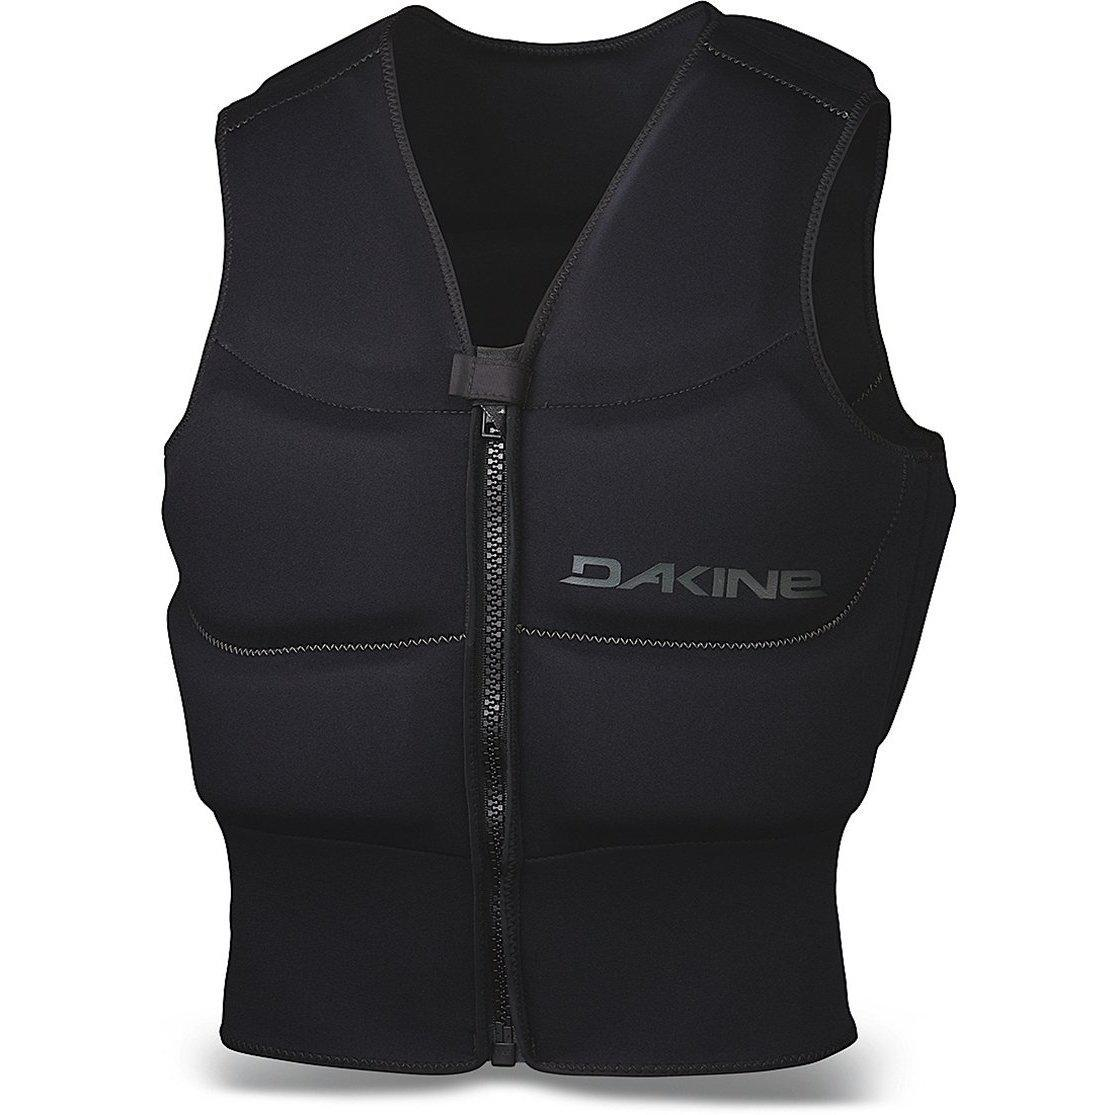 Dakine 2019 Surface Vest-Big Winds